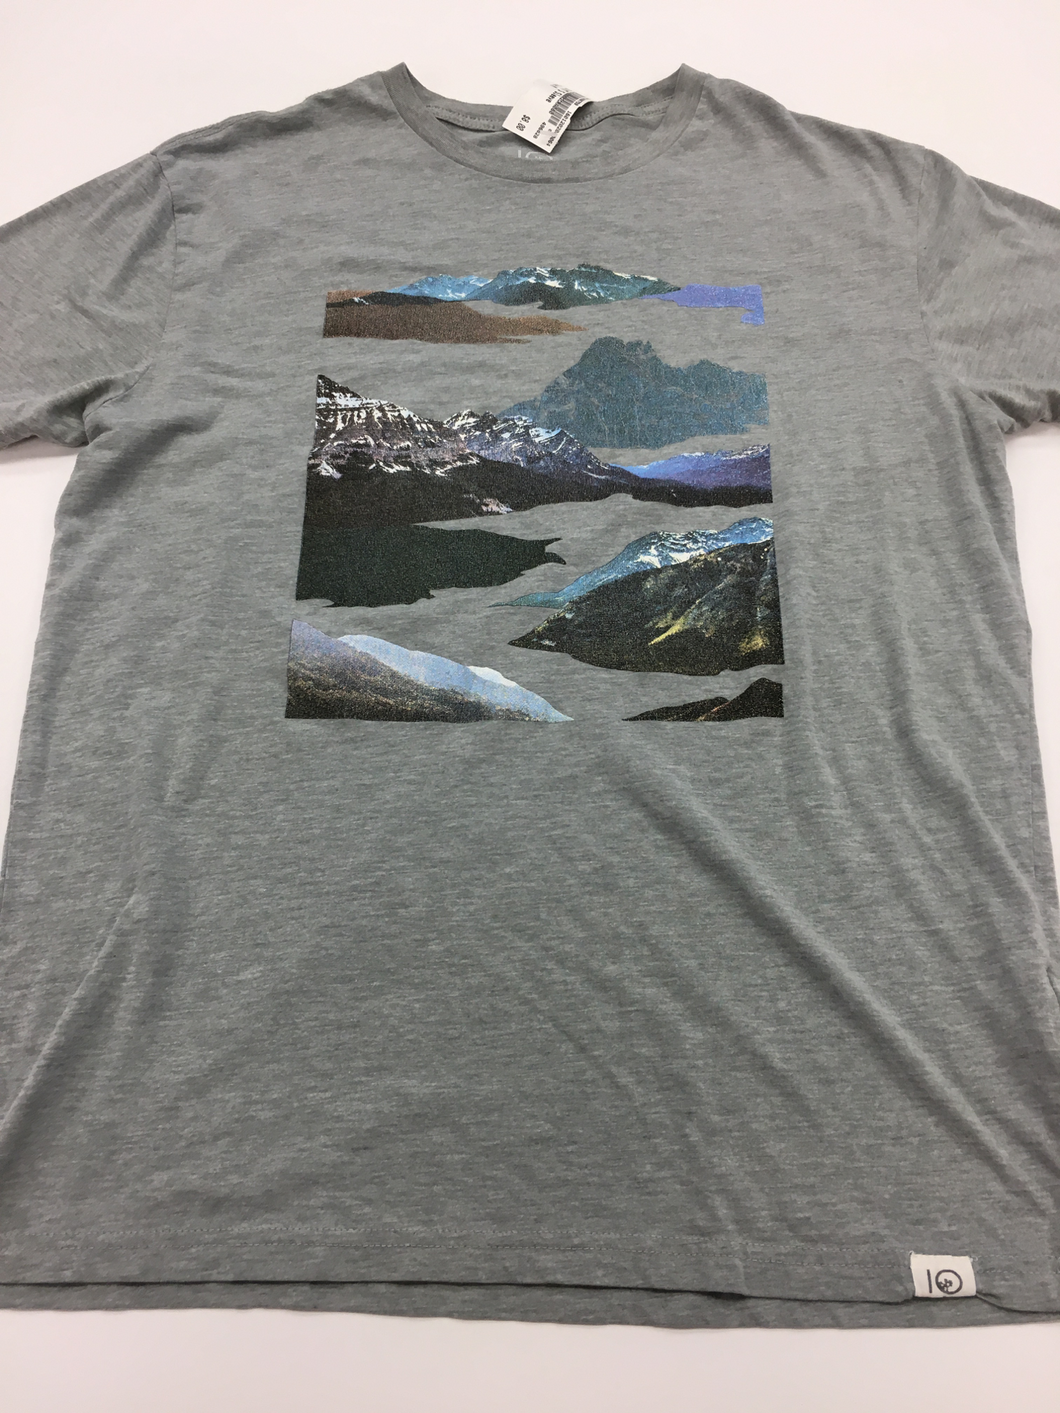 10 Tree T-Shirt Men's Size Medium